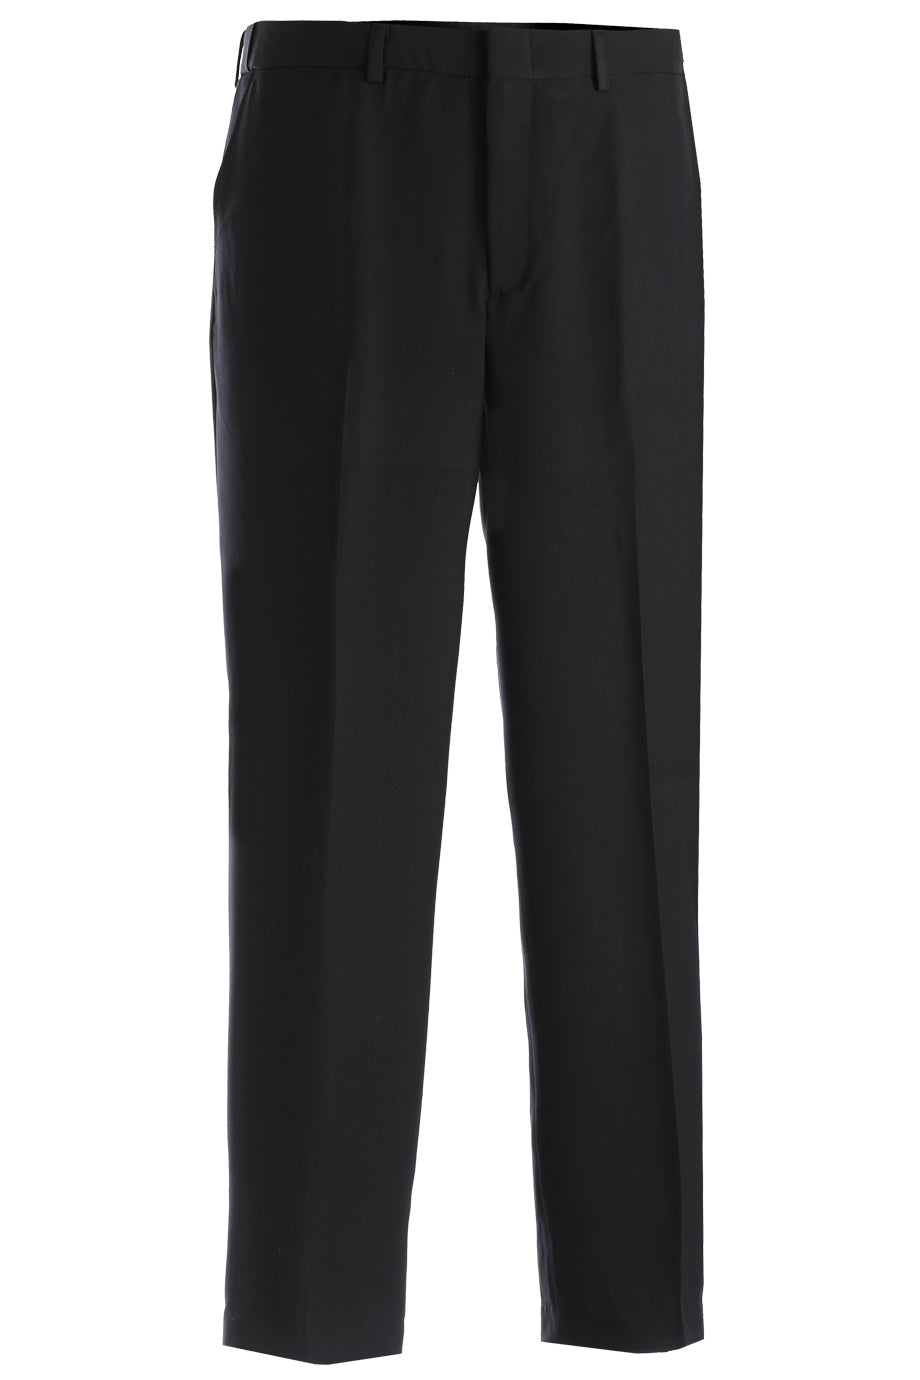 Edwards Mens Intaglio Flat Front Easy Fit Pant - Black